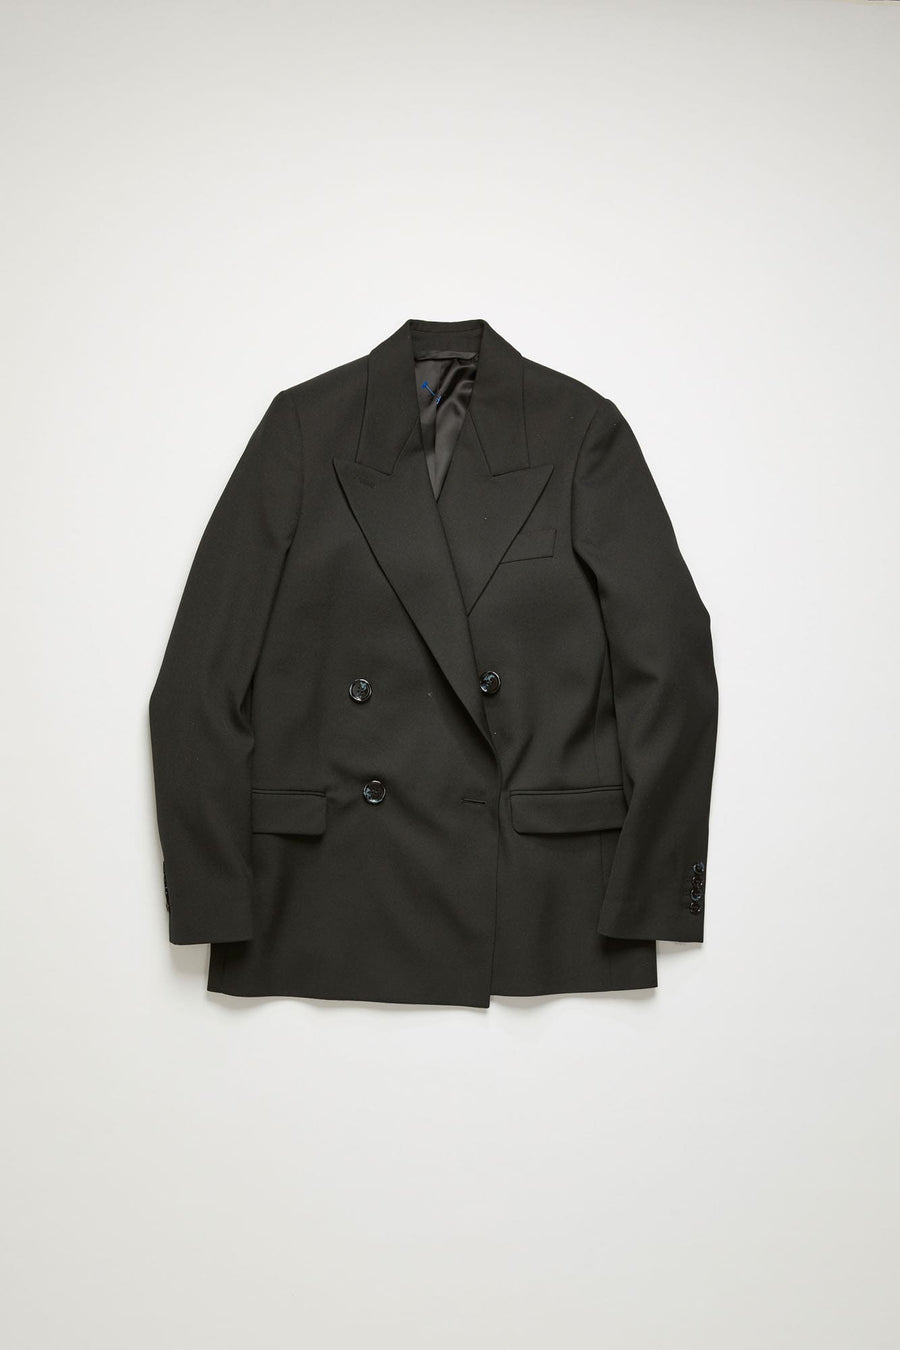 Janny Summer Suit Jacket-black